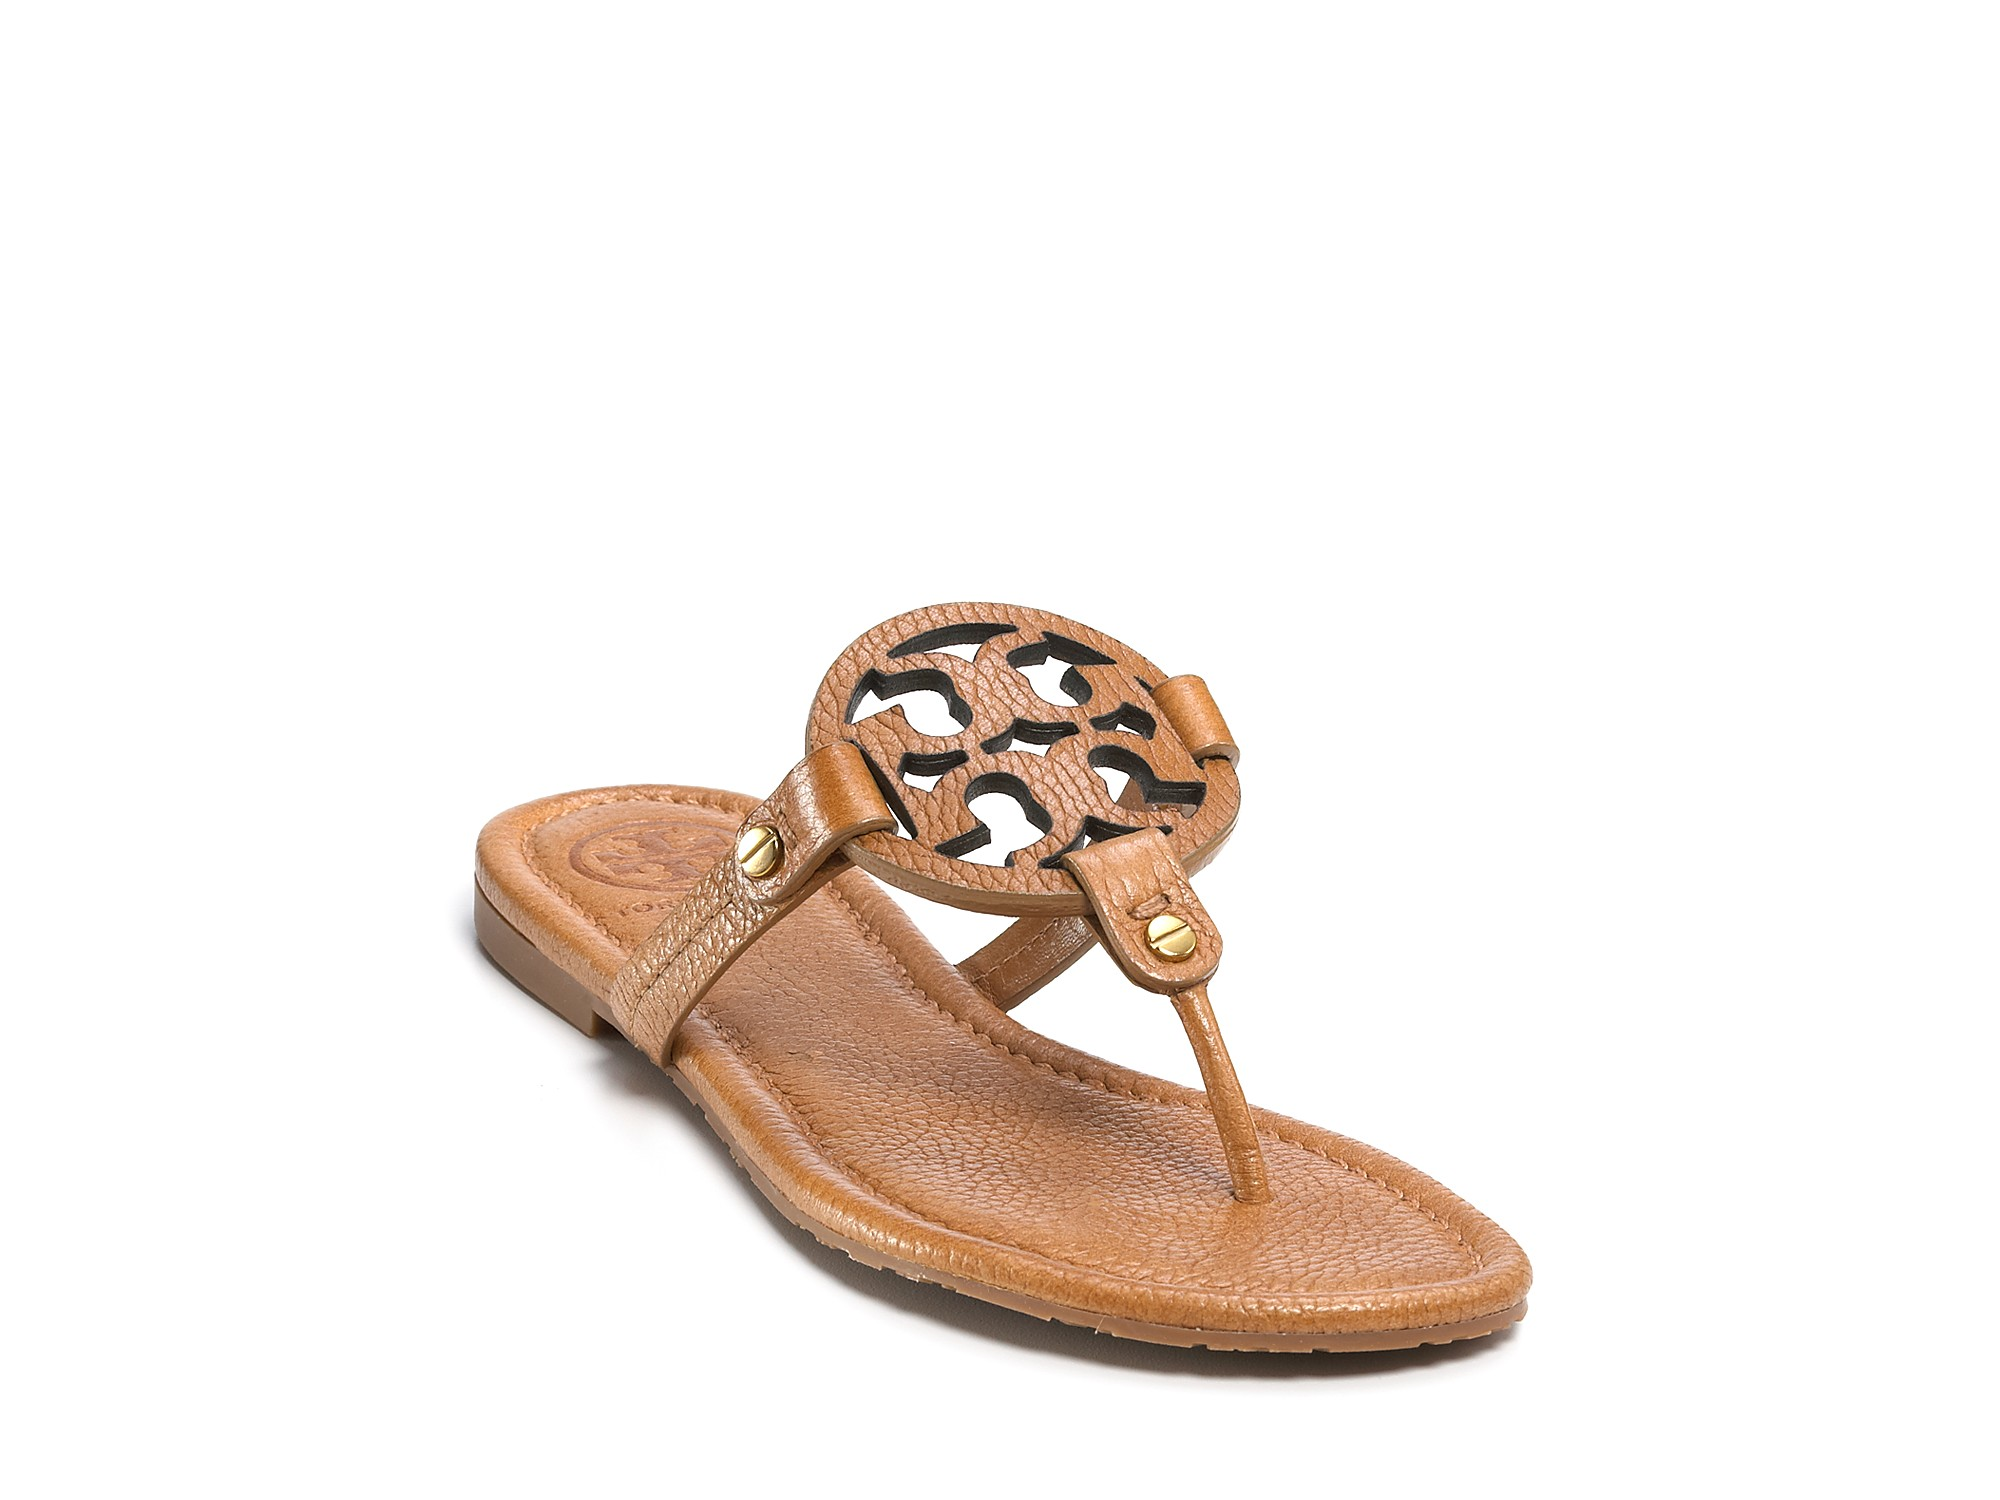 4306691c1e42 Lyst - Tory Burch Thong Sandals Miller in Natural